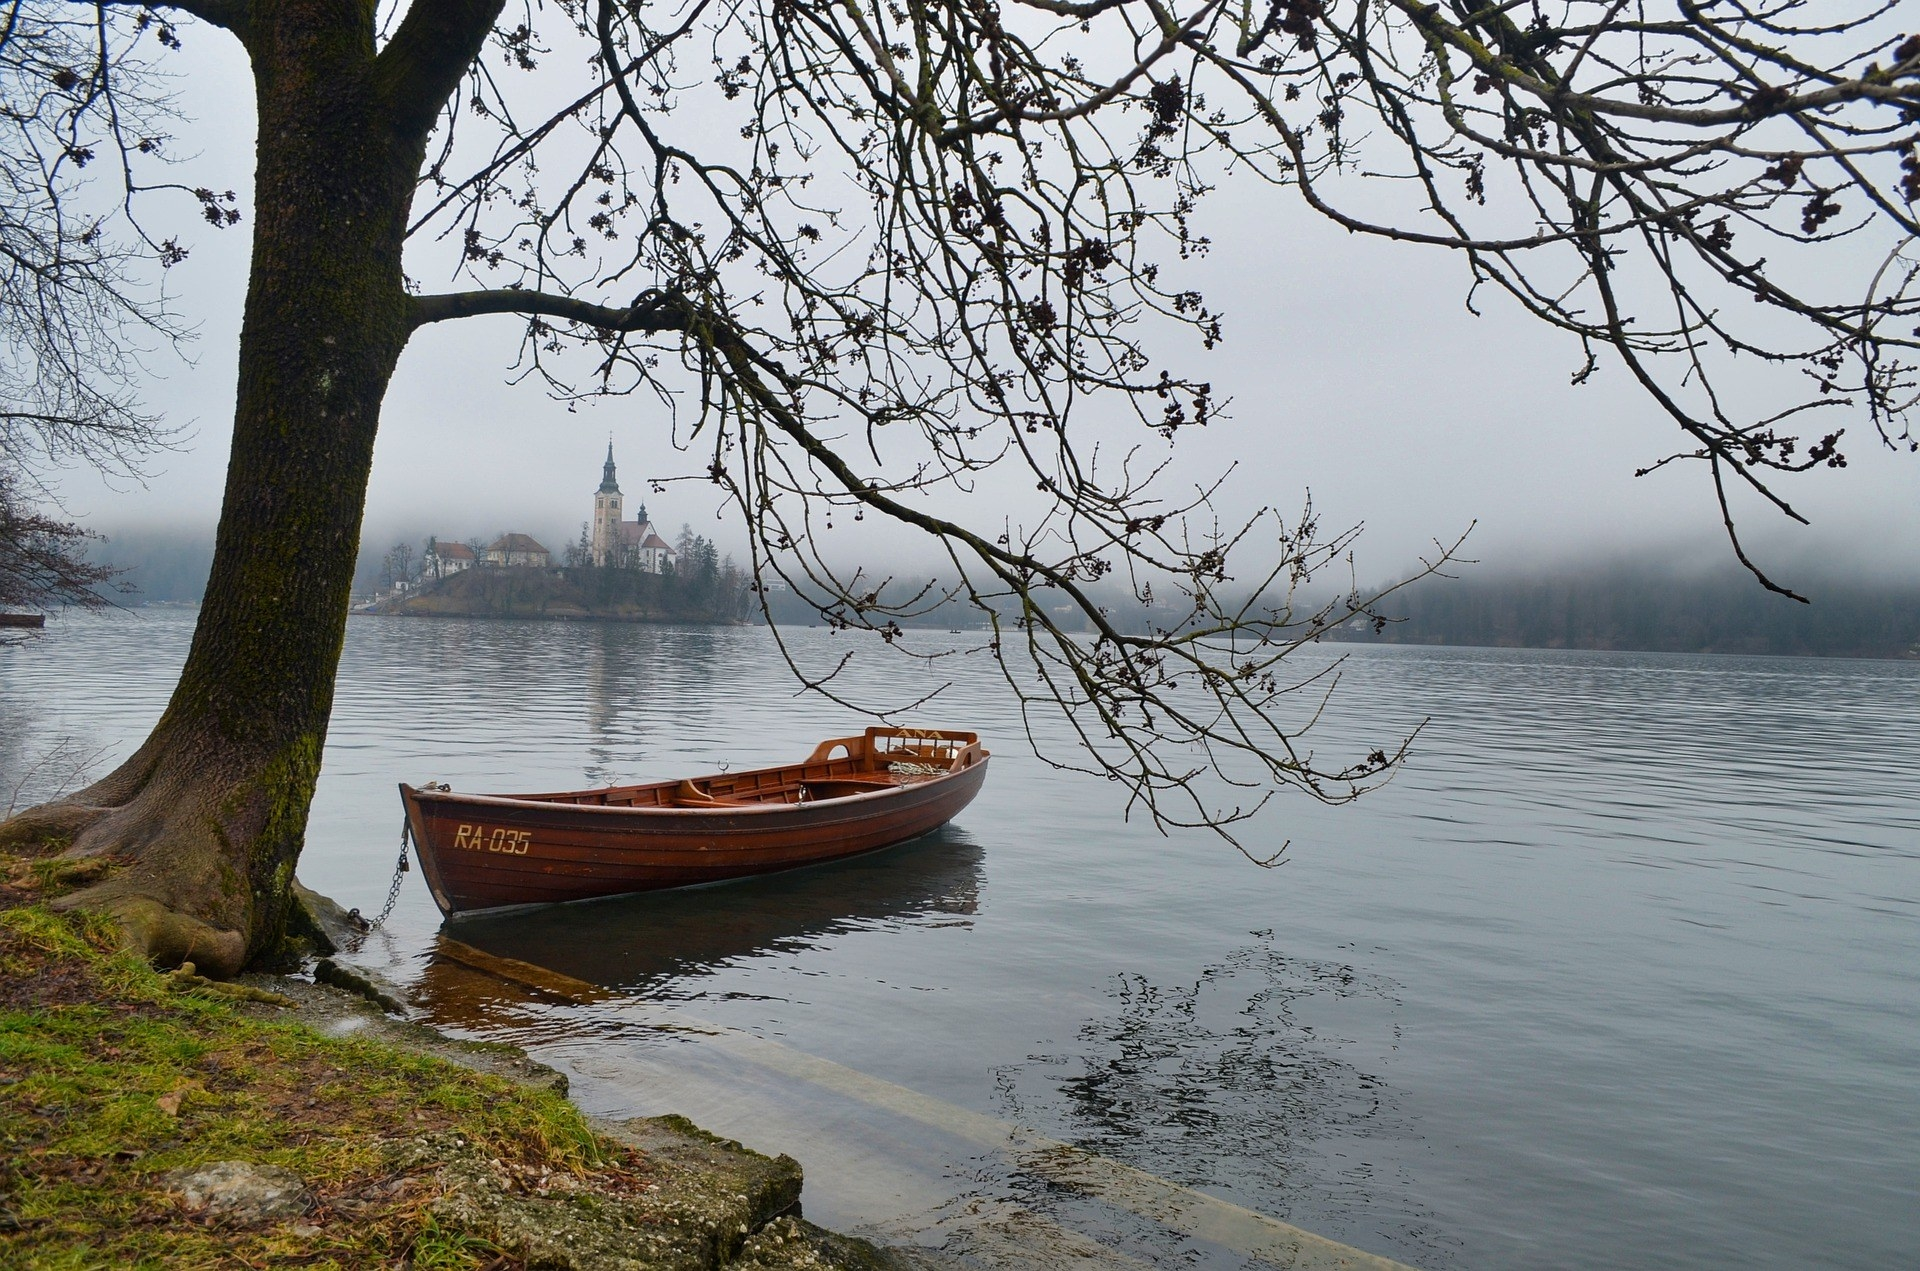 A boat under a tree on Lake Bled, Slovenia.